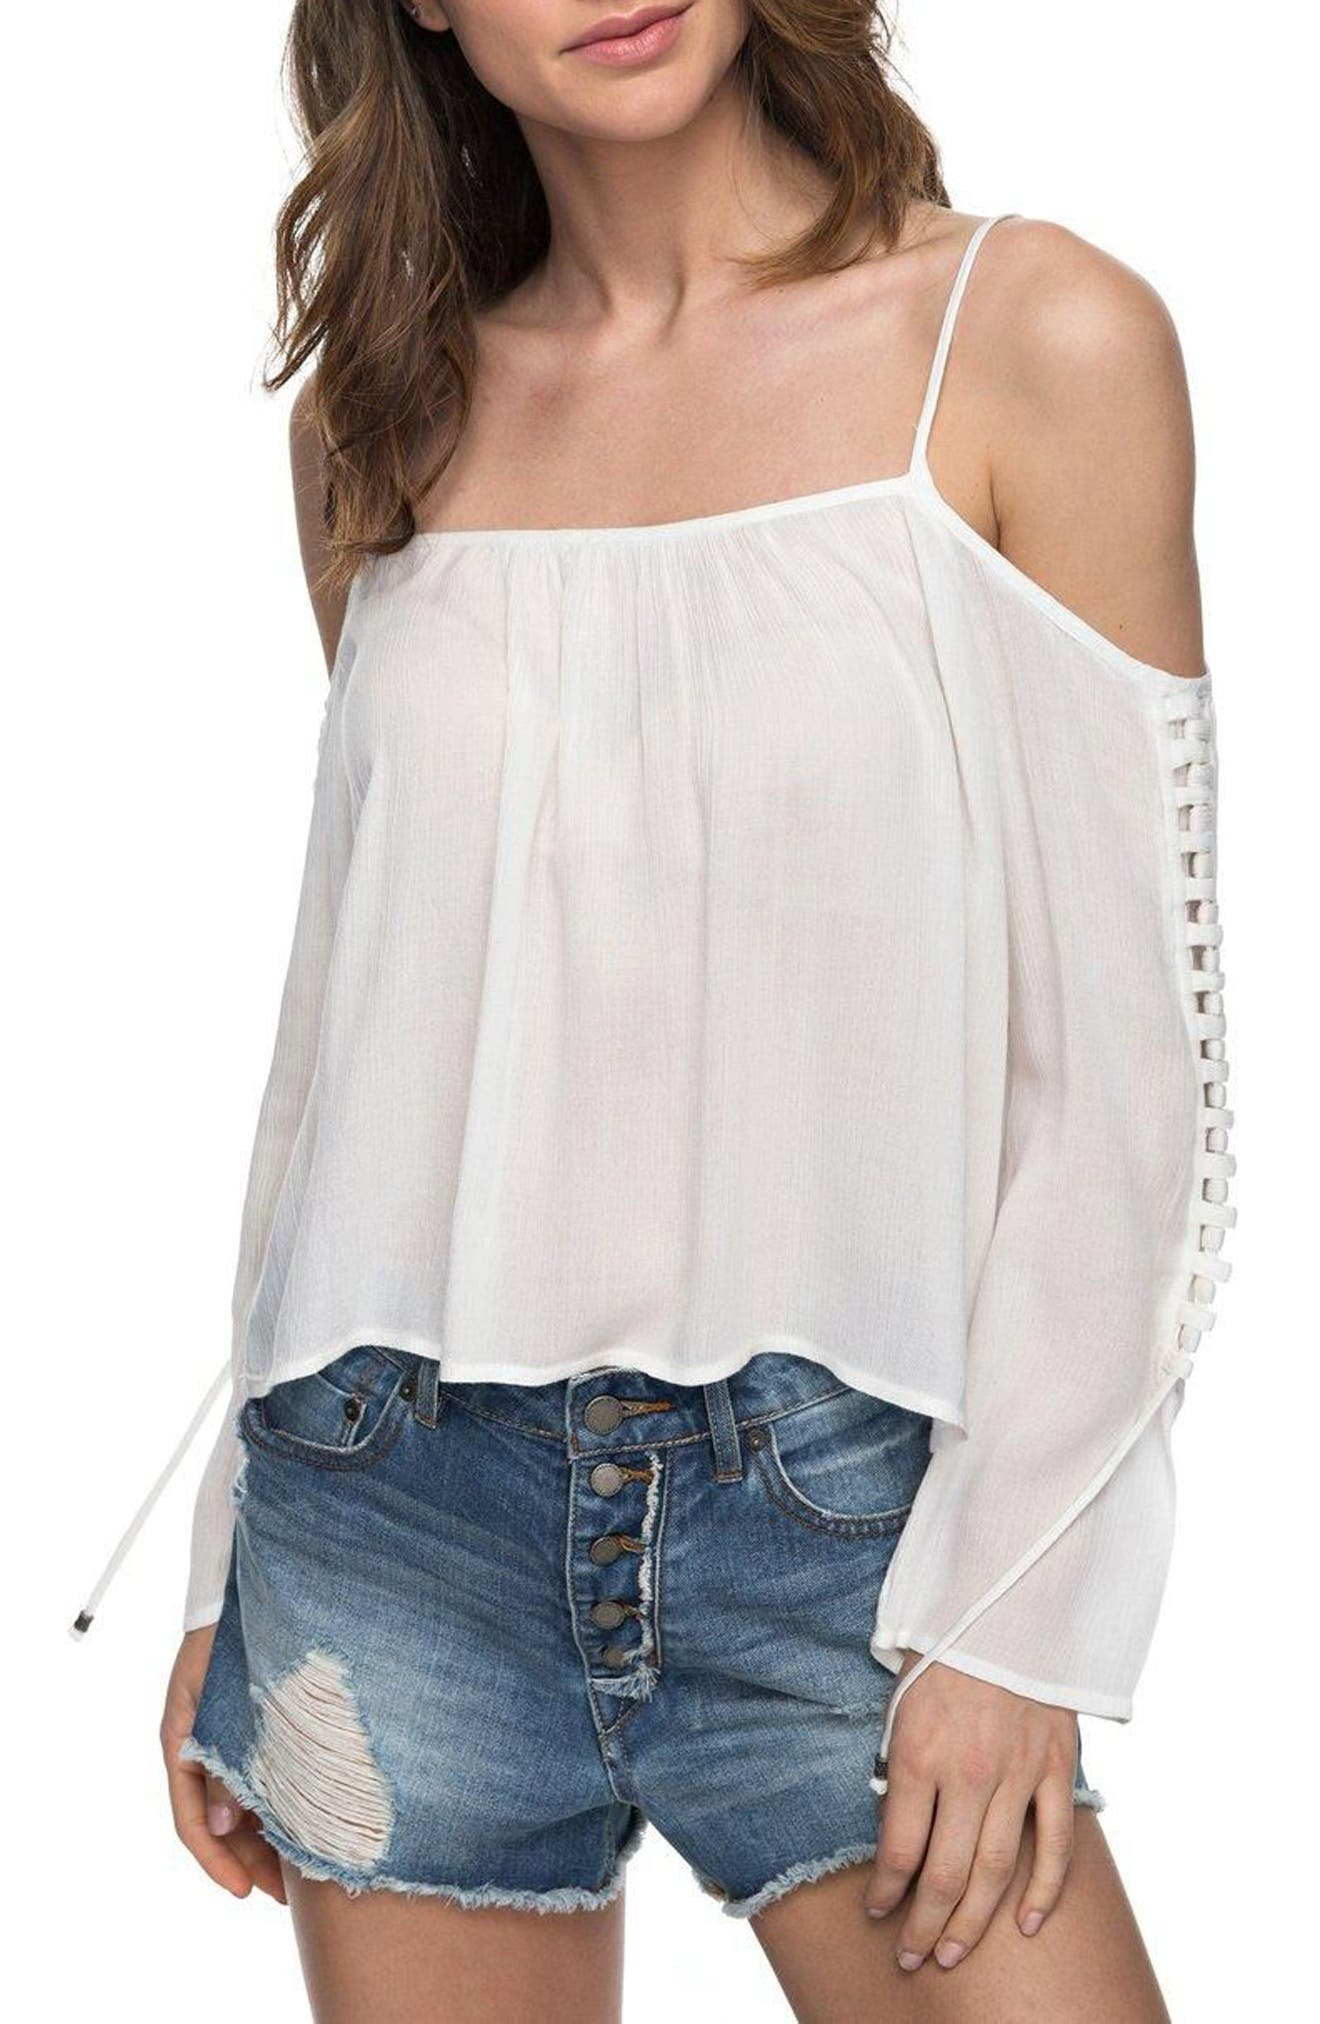 Alternate Image 1 Selected - Roxy Paradise Ocean Off the Shoulder Top